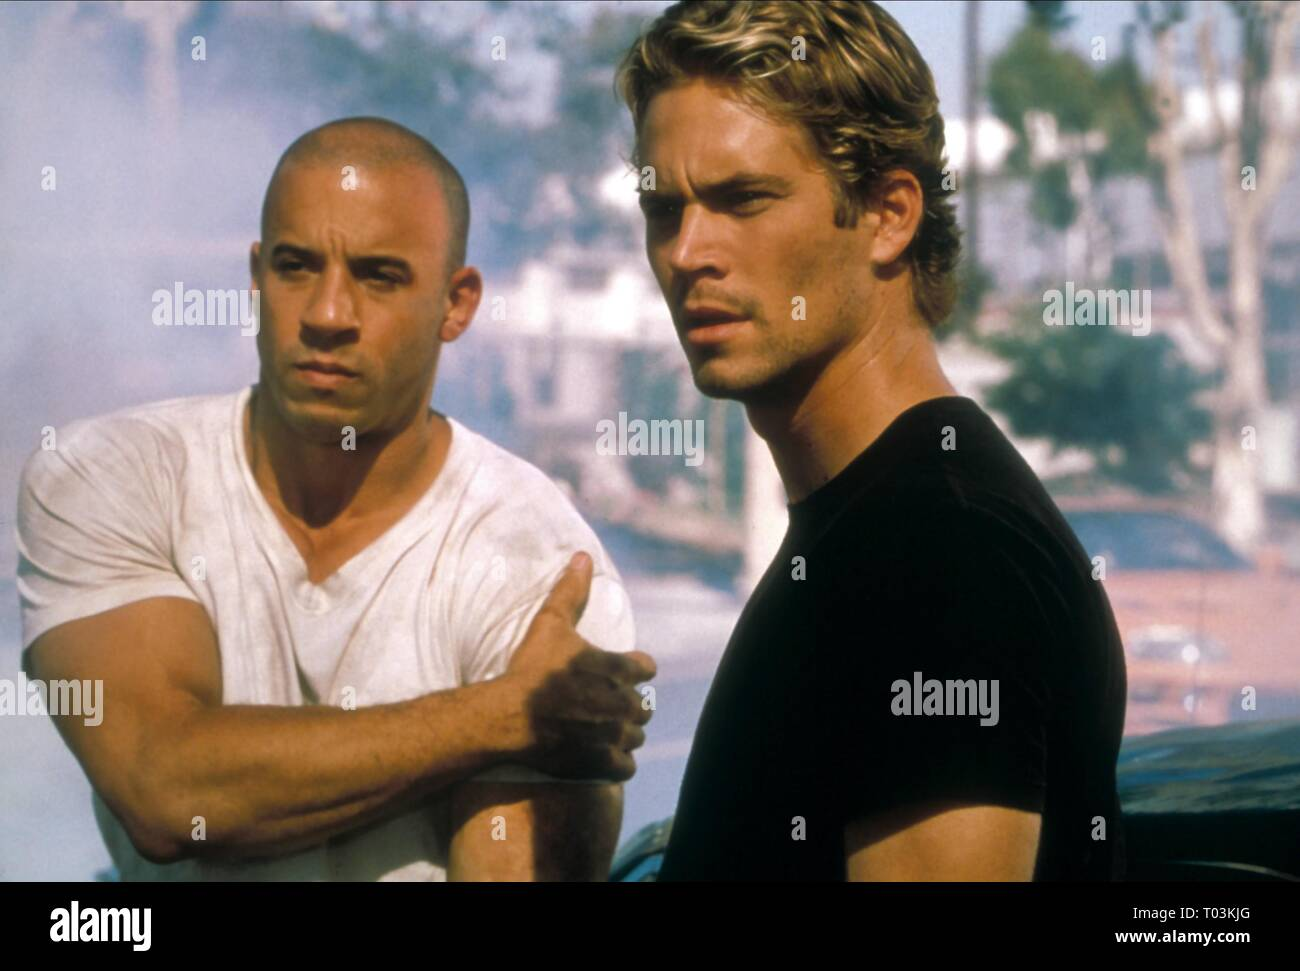 VIN DIESEL, PAUL WALKER, THE FAST AND THE FURIOUS, 2001 Stock Photo